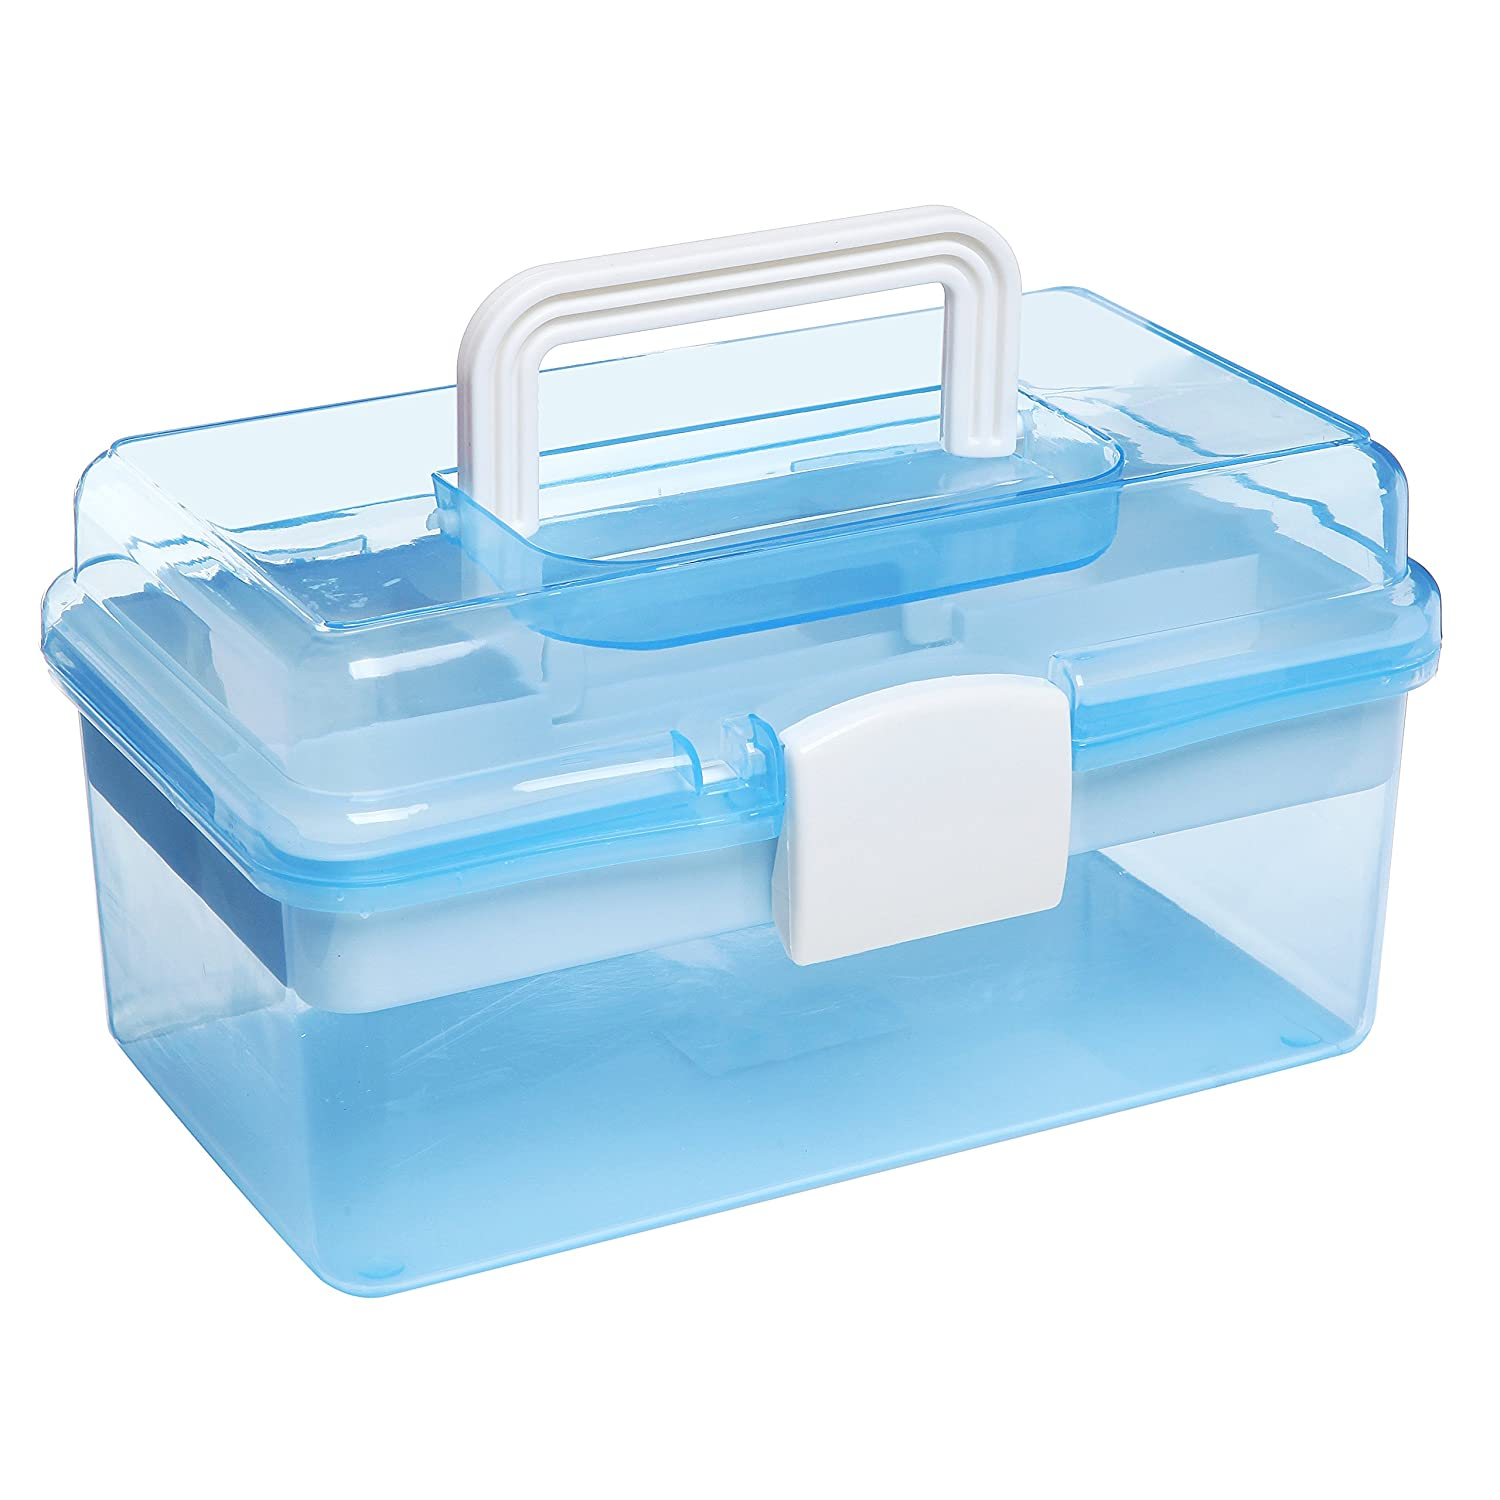 MyGift 10 Clear Light Blue Plastic Multipurpose Portable Handled Organizer Storage Box/Case w/Removable Tray FBA_TB-HOM0419BLU